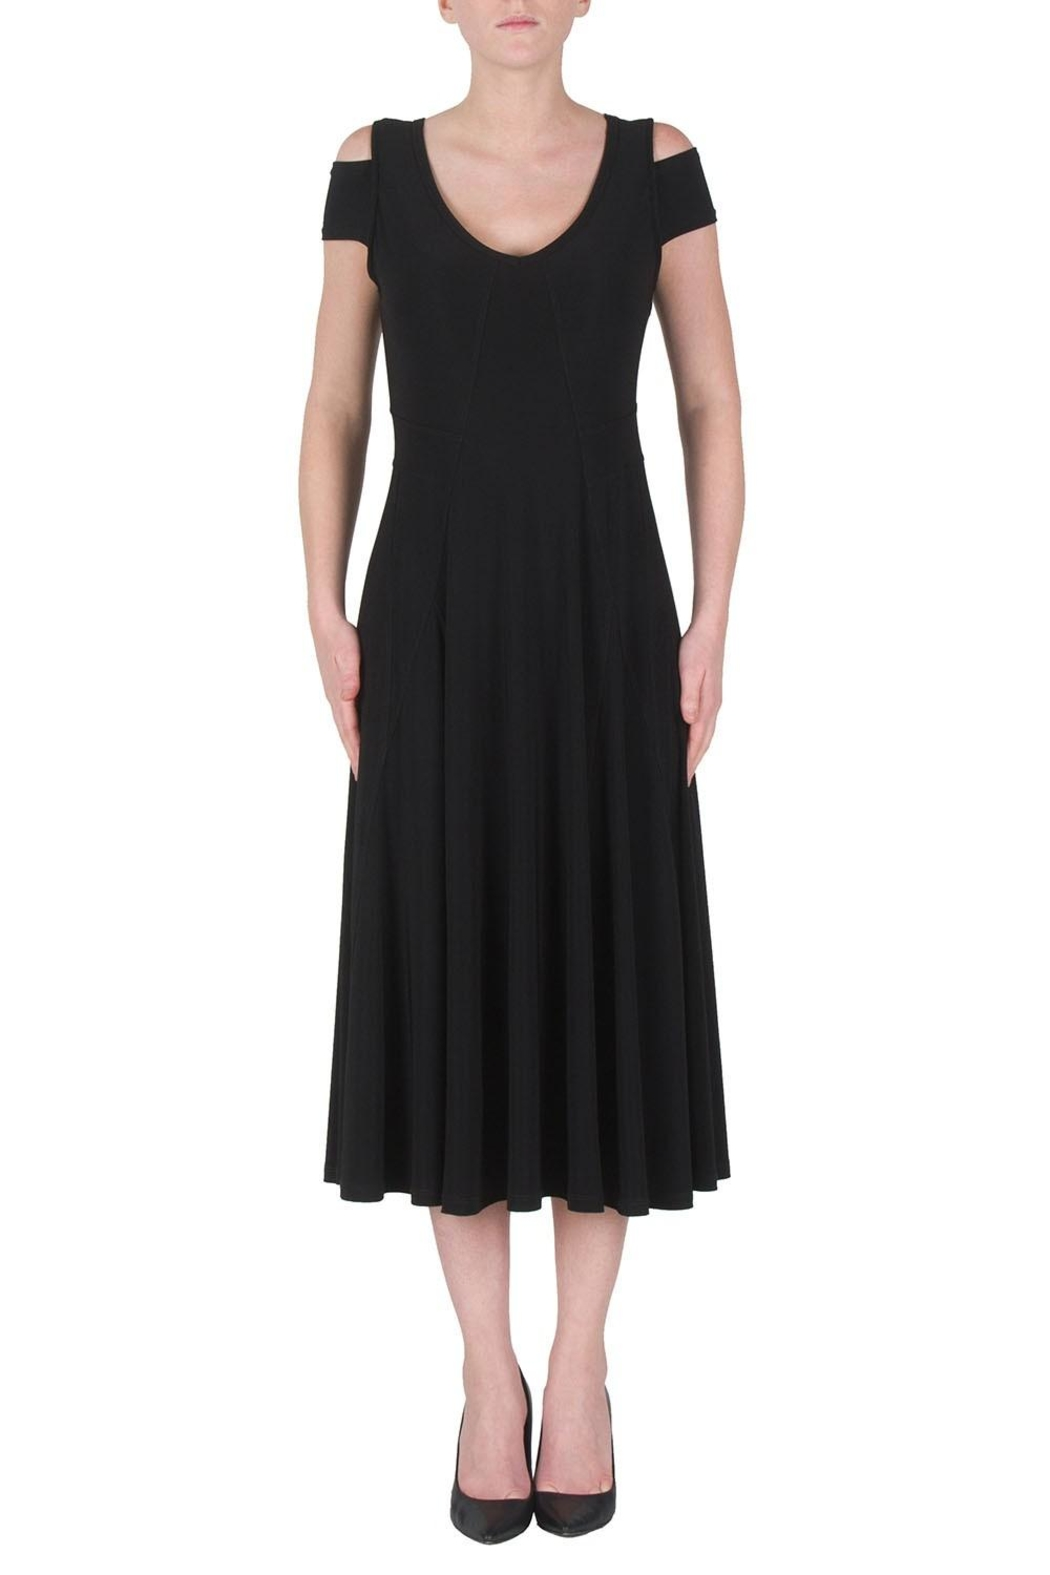 Joseph Ribkoff Cutouts Midi Dress - Main Image